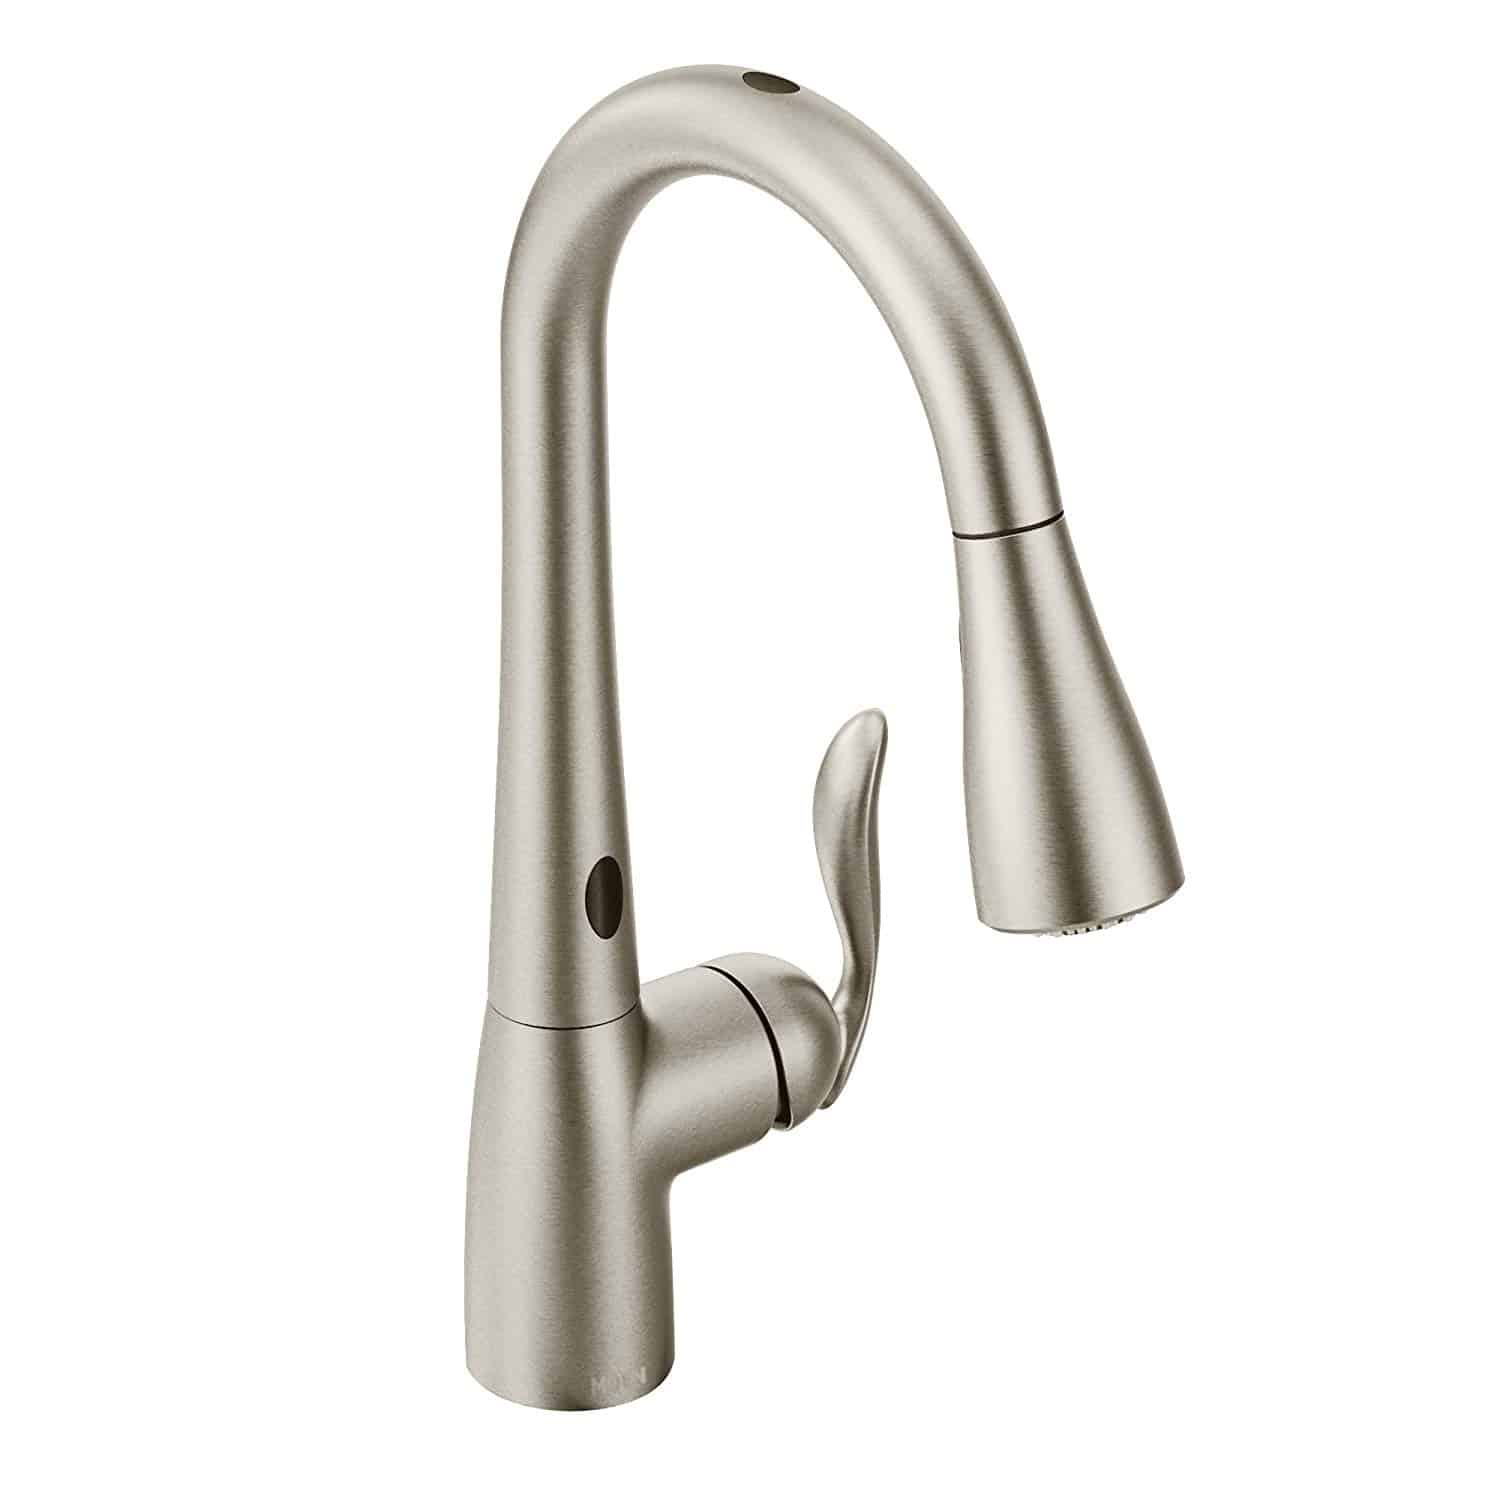 Best Kitchen Faucets.Best Kitchen Faucets Reviews Complete Guide 2020